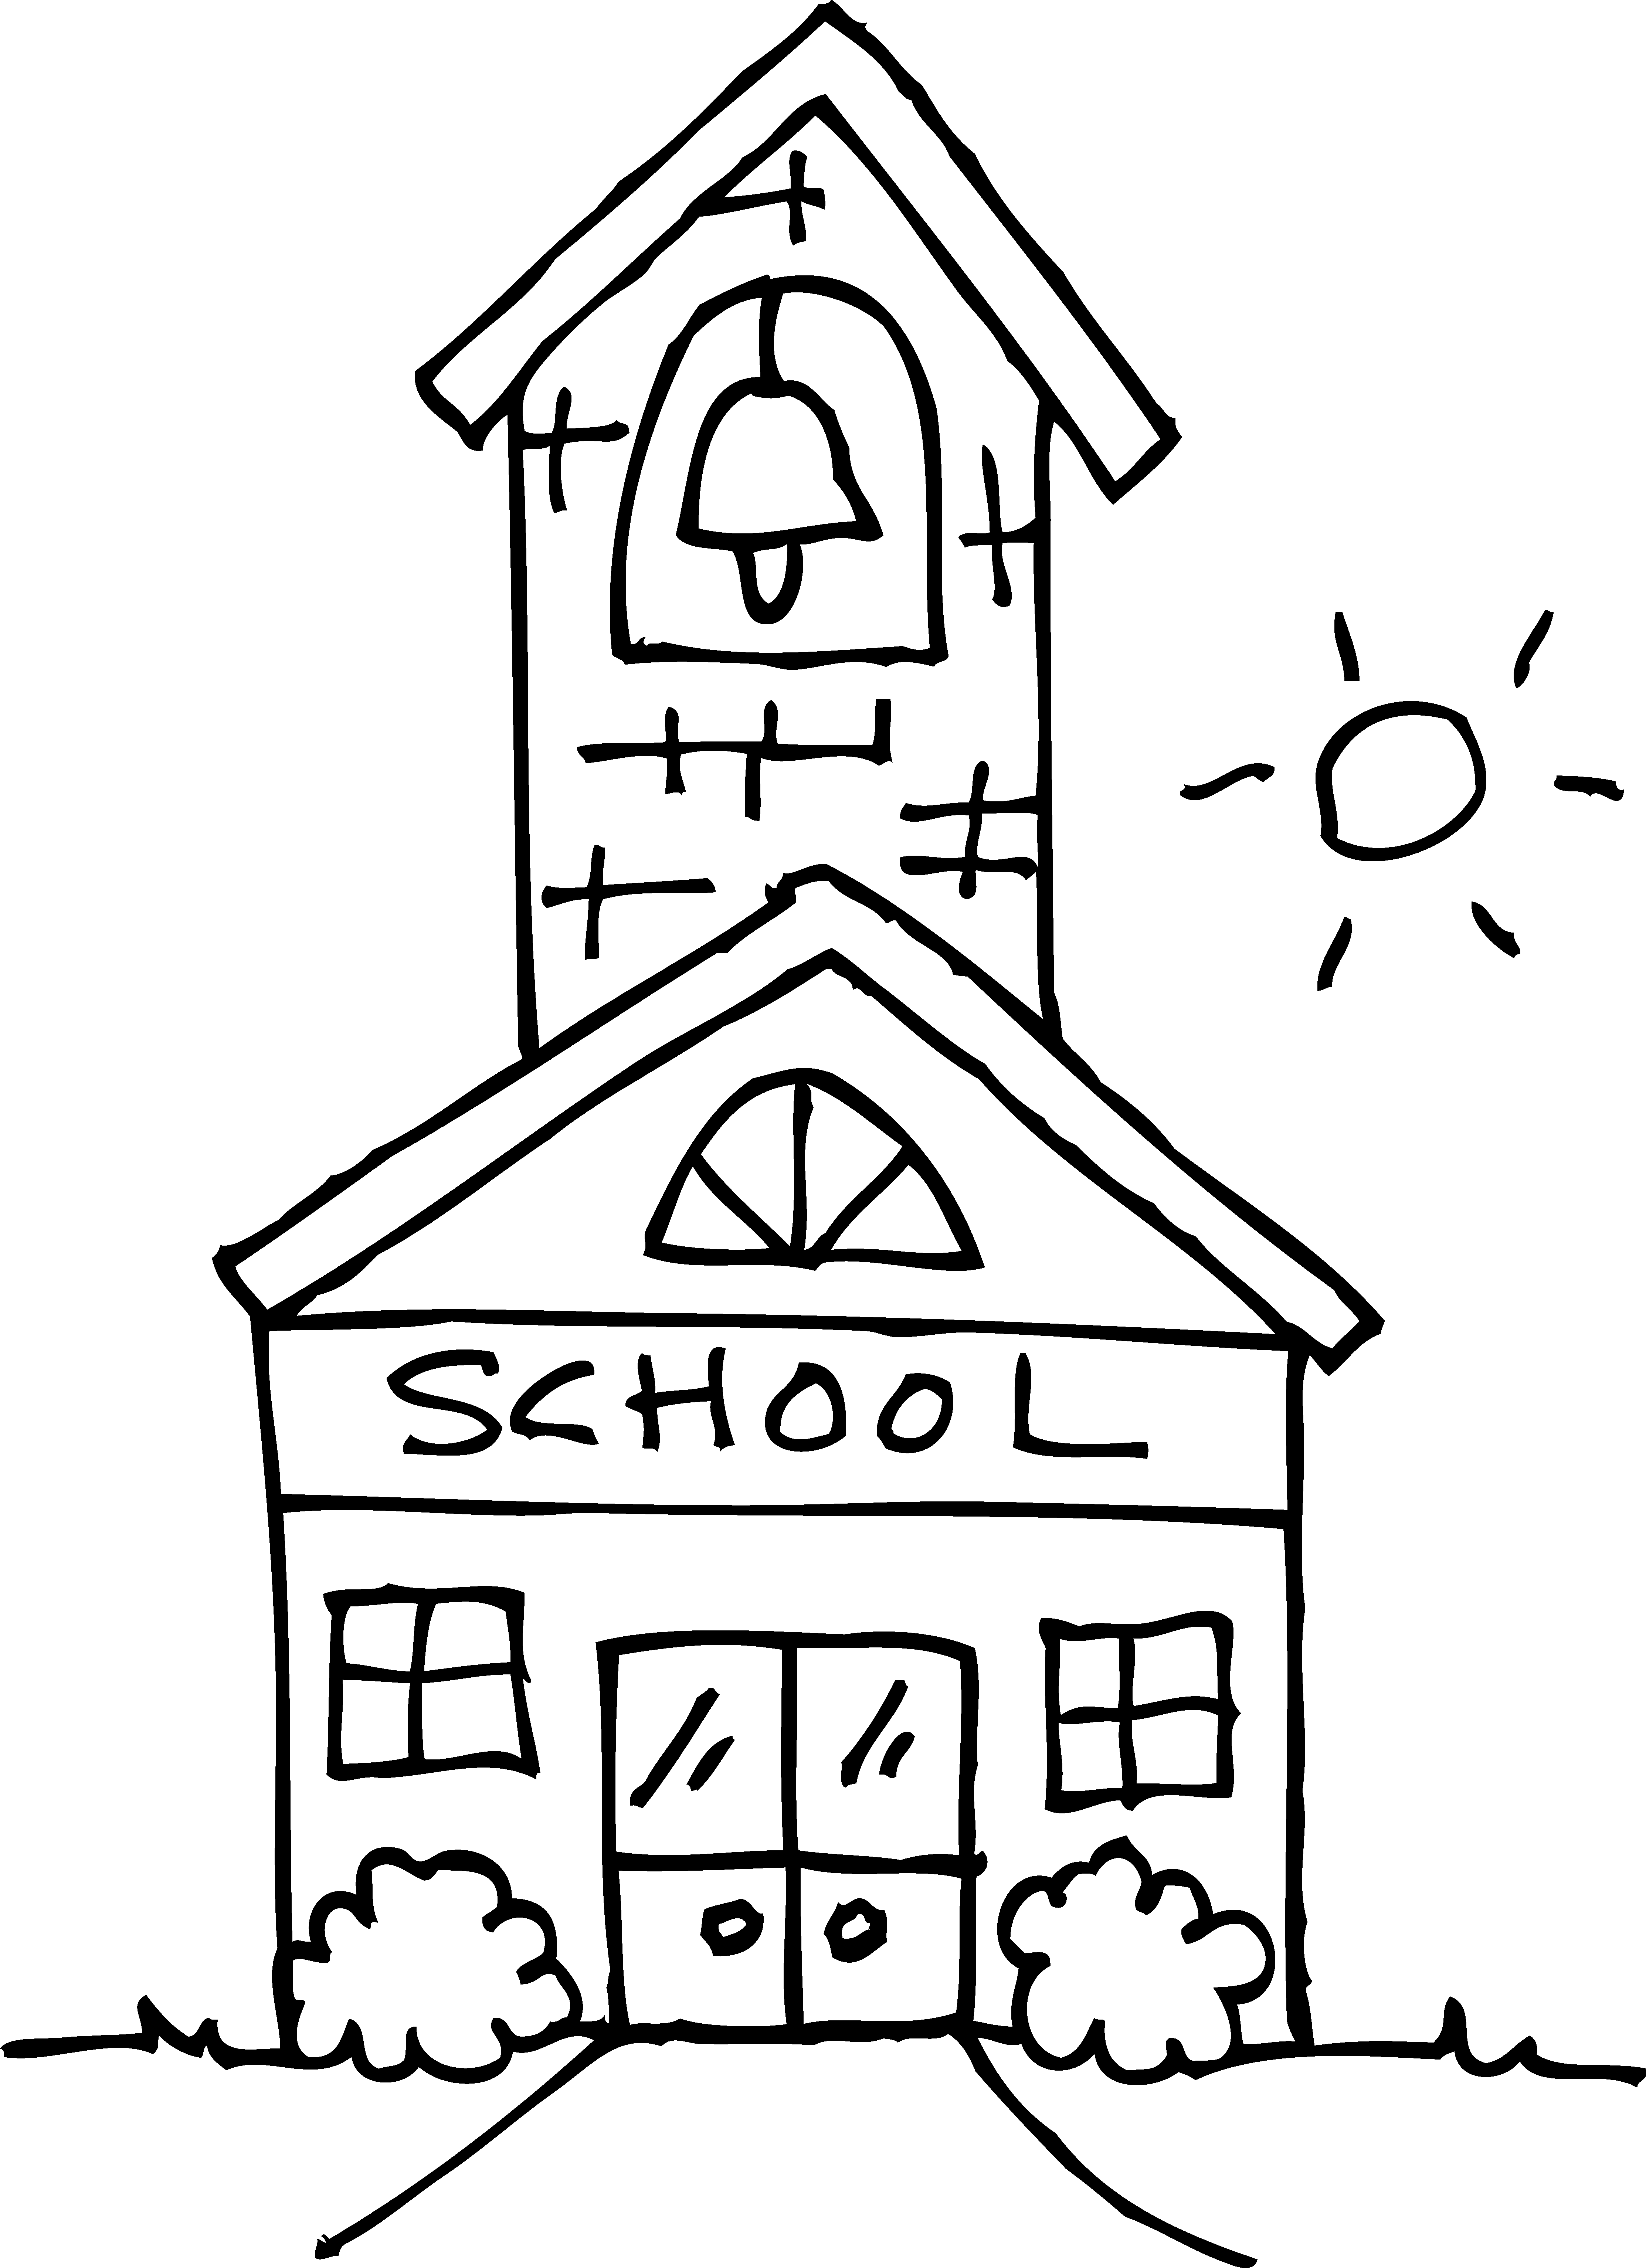 Outline clipart school.  collection of at